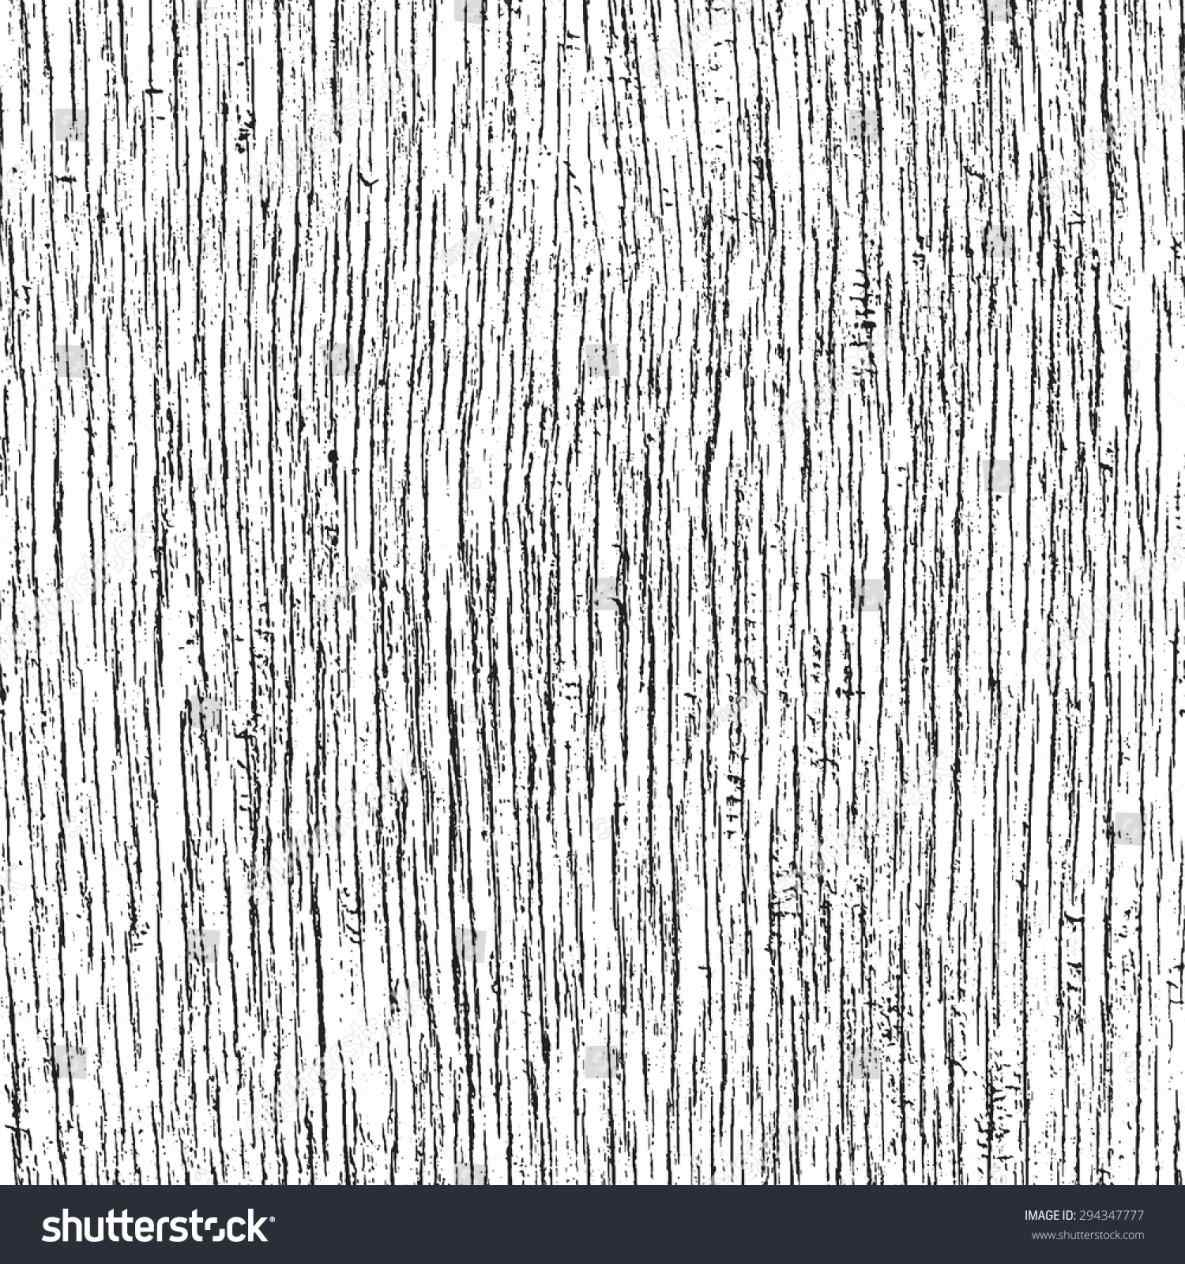 1185x1264 Wood Grain Texture Vector Black And White